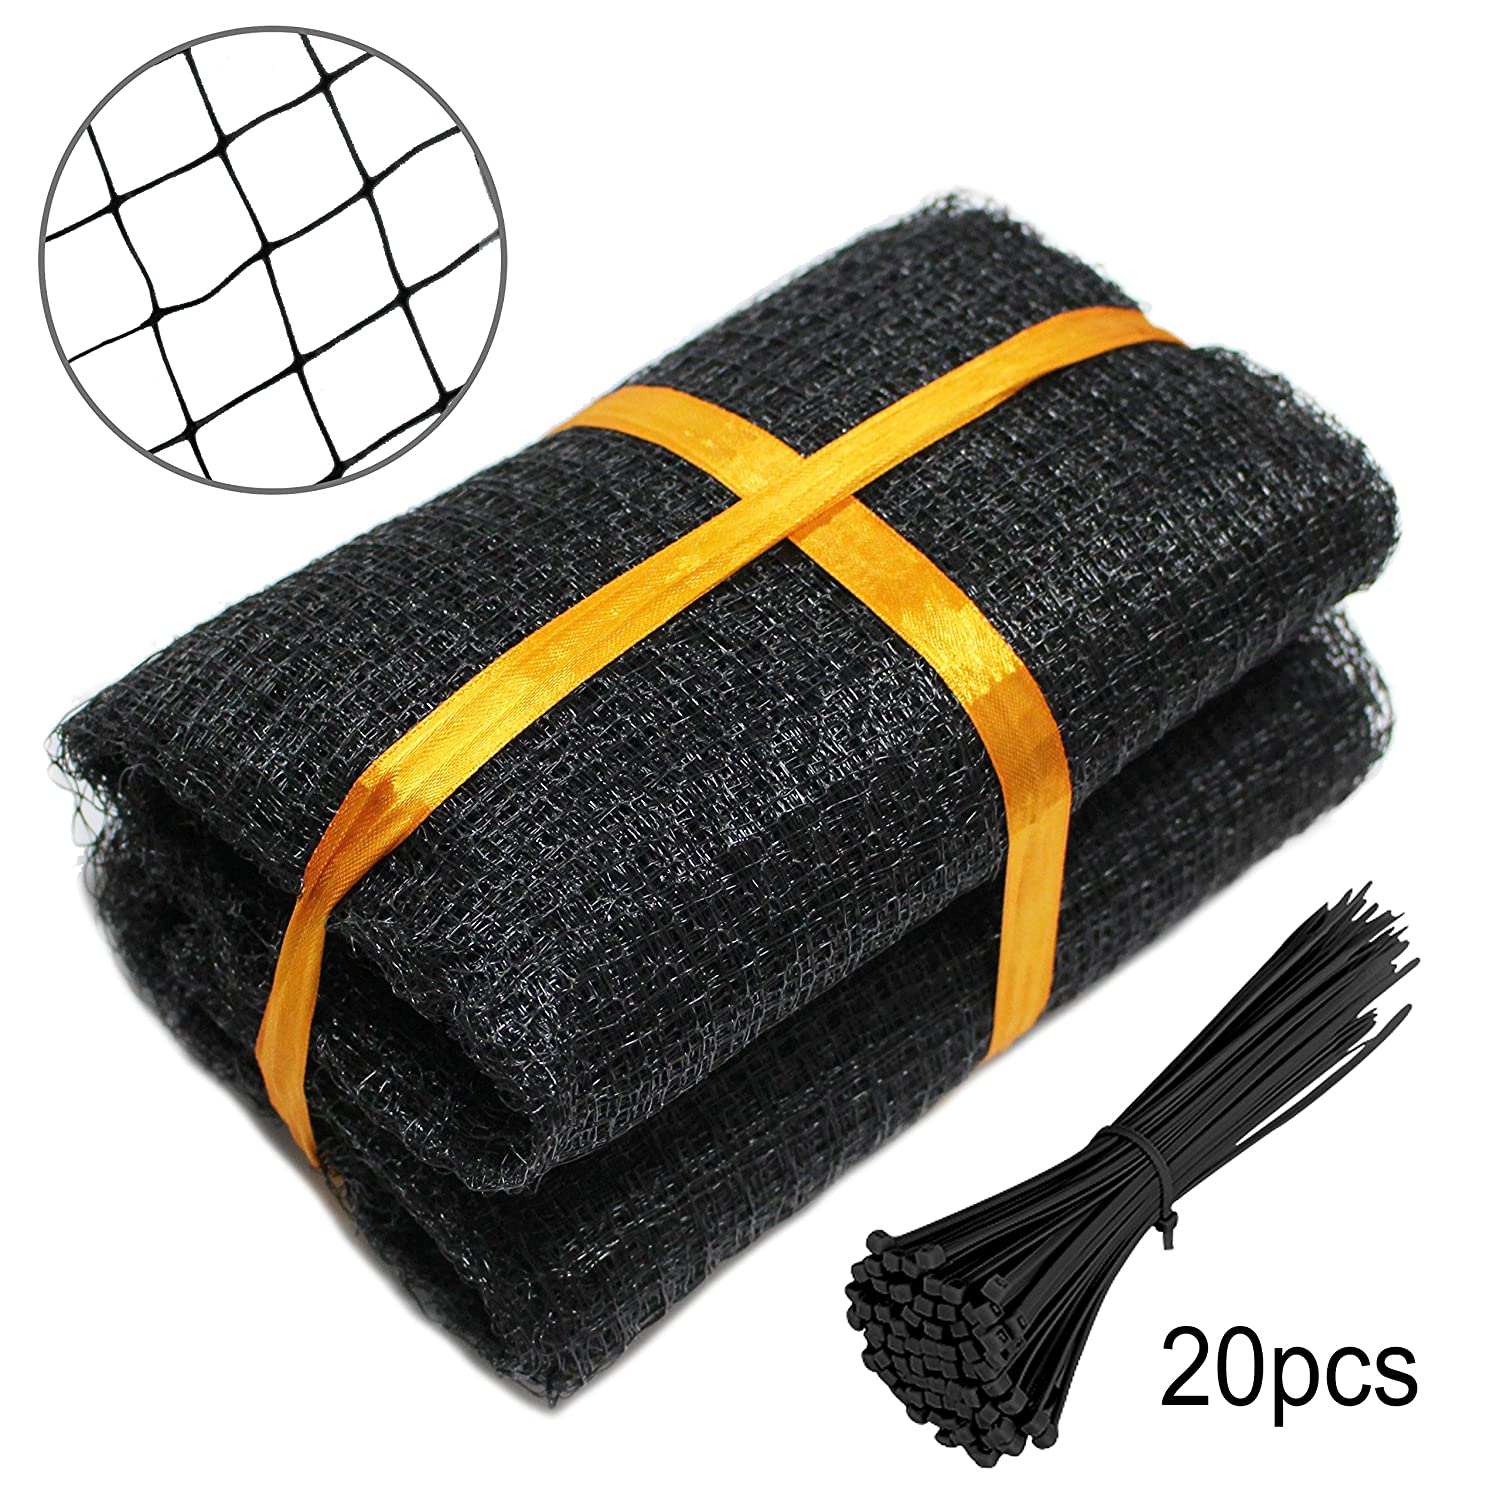 Gardzen 6.8ft x 30ft Heavy Duty Anti Bird Netting, Deer Fence, Pond Net with 20pcs Cable Ties - Protect Your Garden Vegetables Fruit Plants Ponds